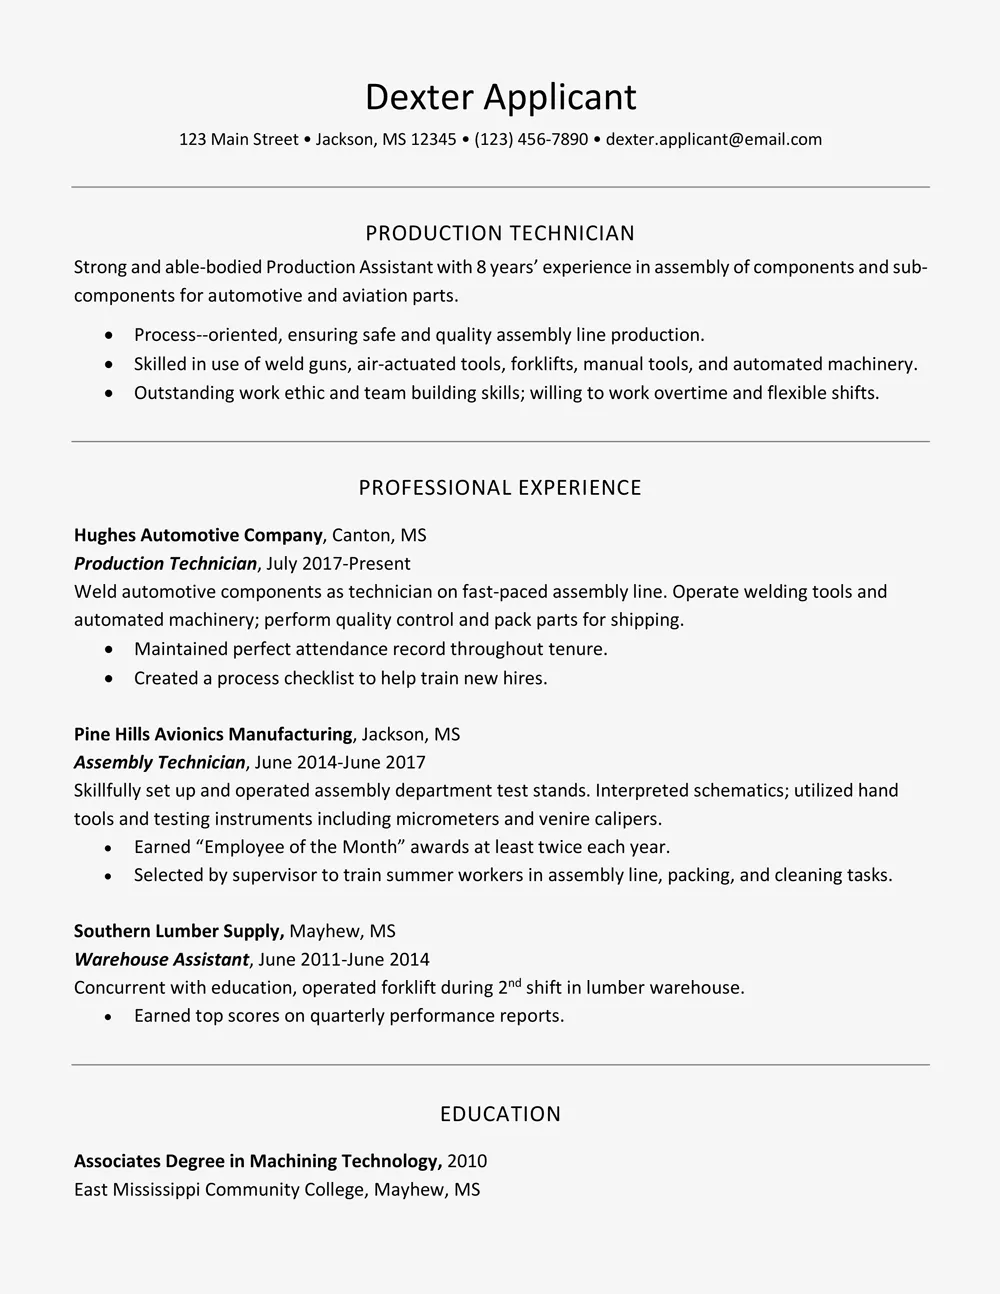 Tips on Creating a Professional Resume (Görüntüler ile)